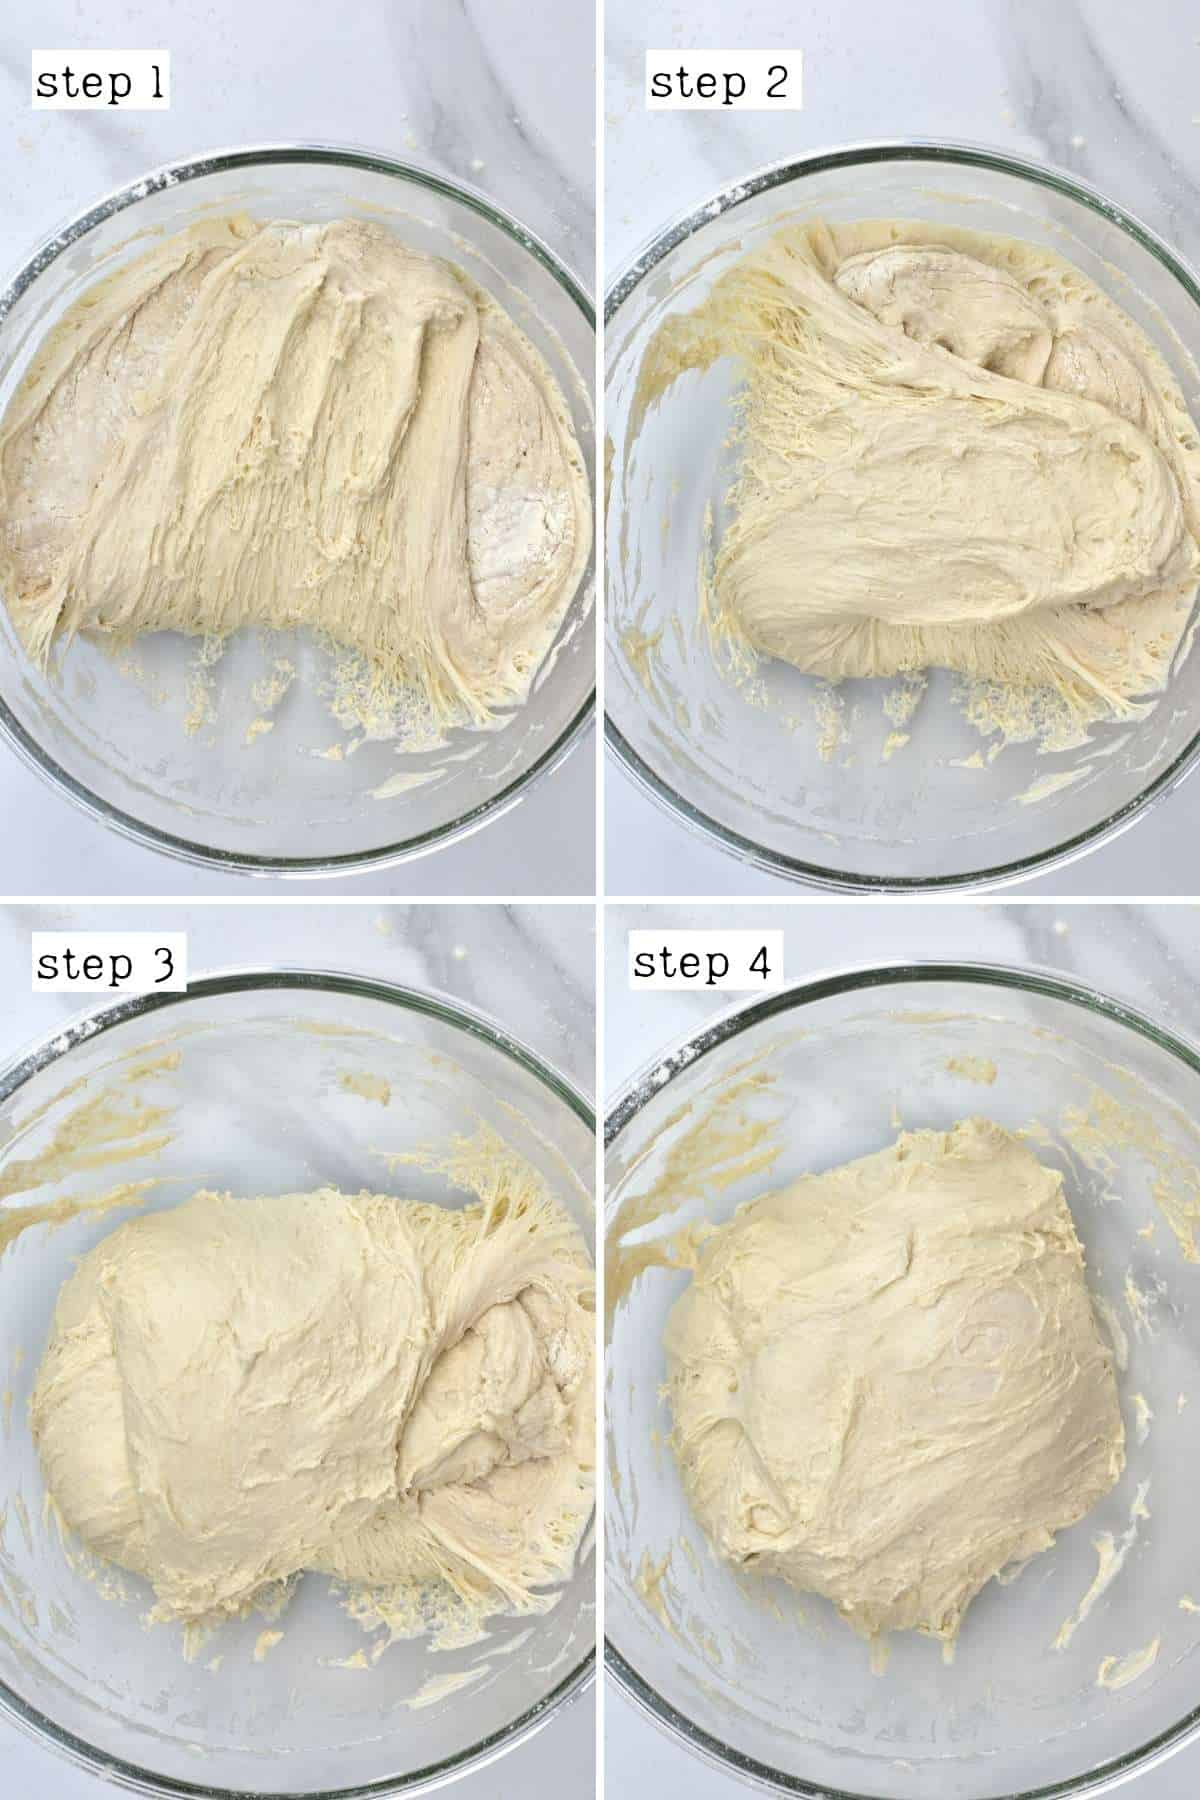 Steps for folding no knead bread